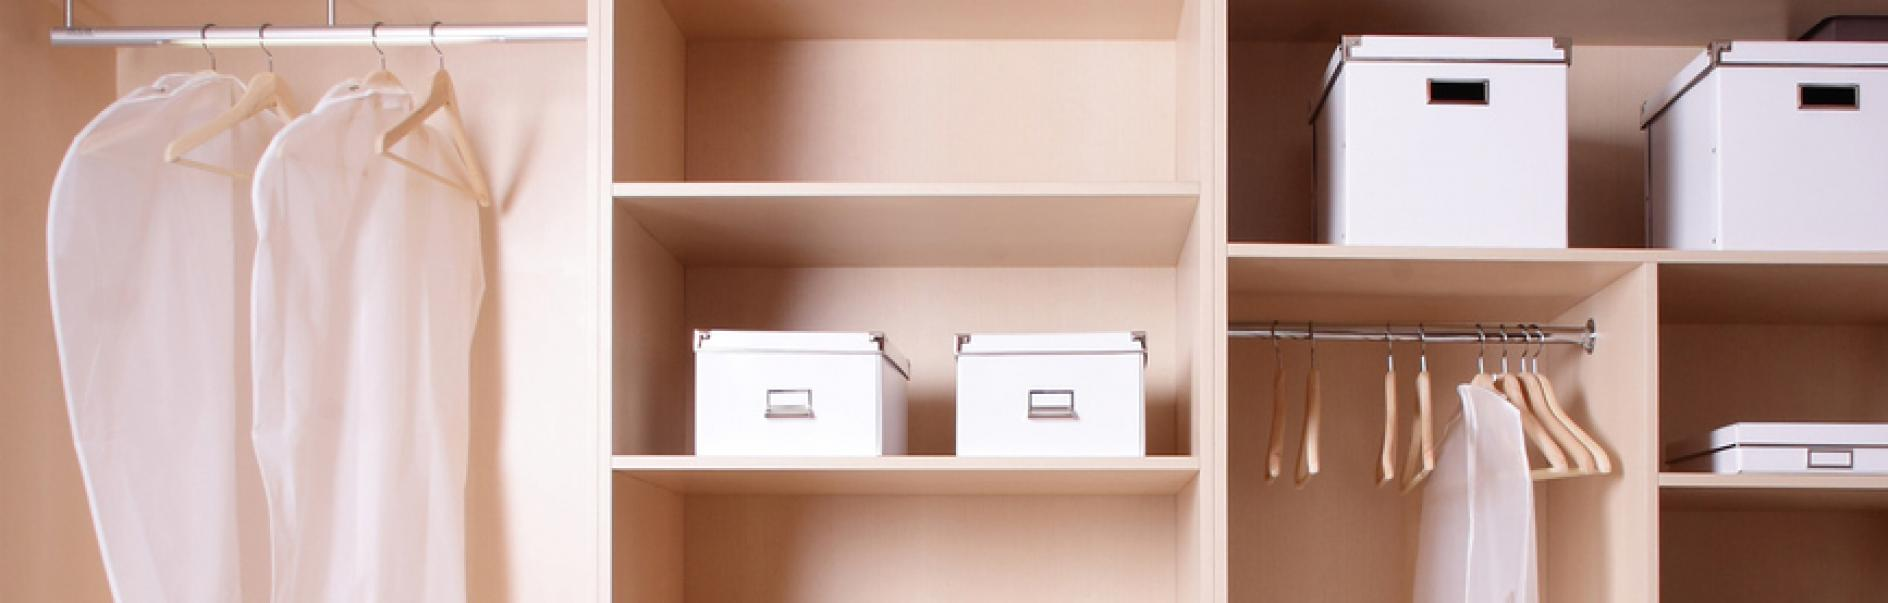 How to fit an extra shelf in your wardrobe